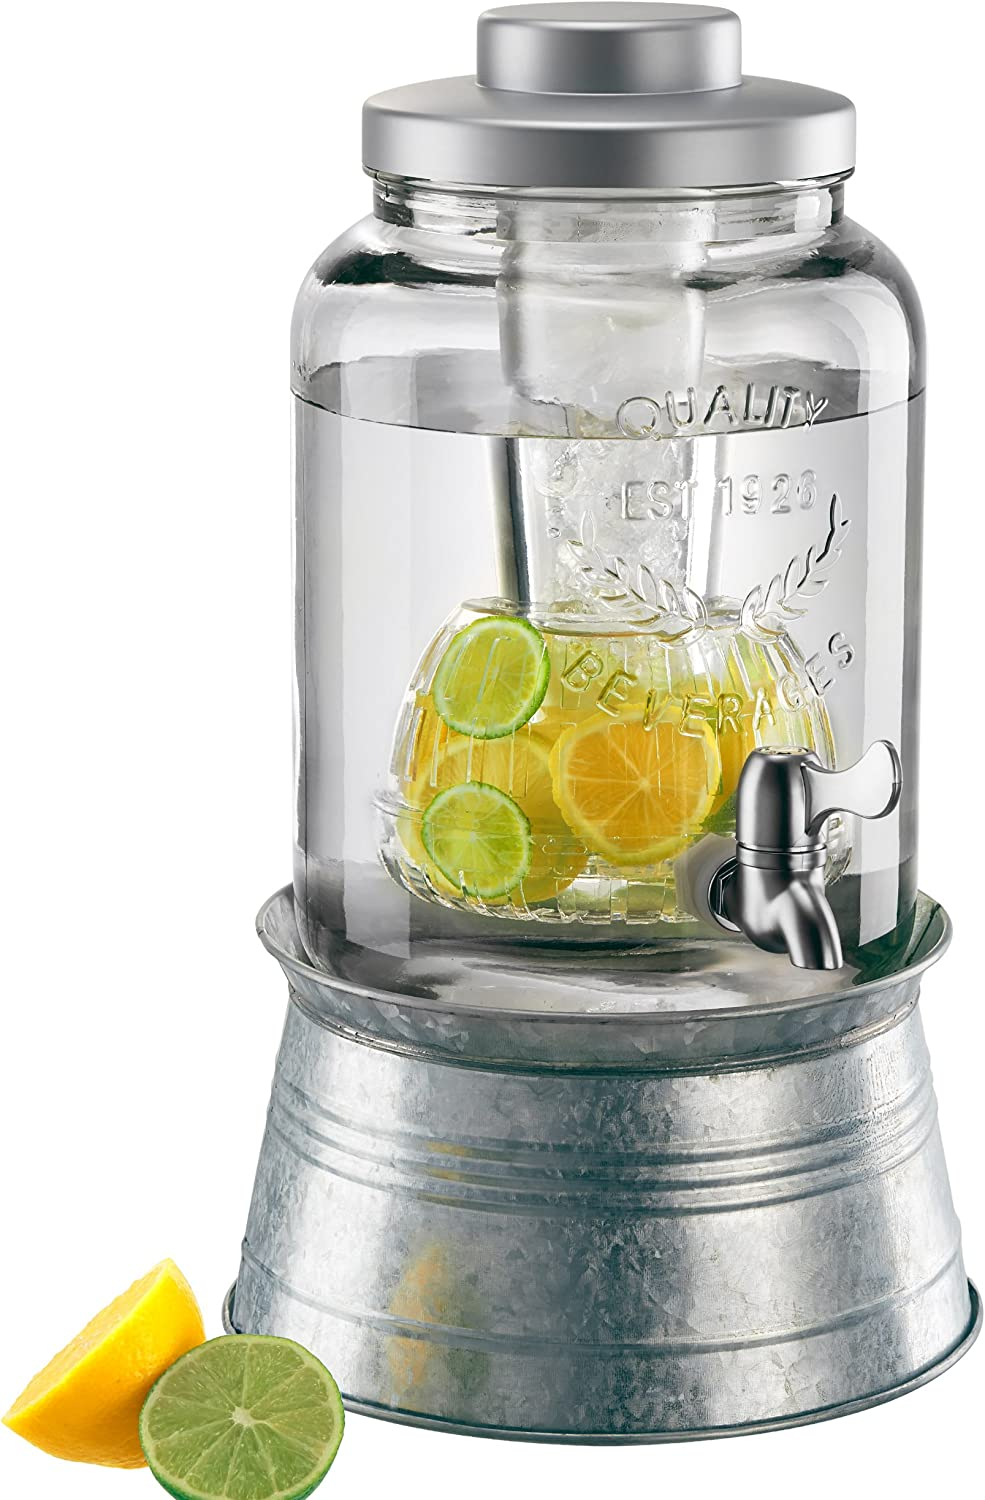 Artland Masonware Beverage Jar 2 Gal W Chiller Infuser Galvanized Stand Home D Cor Products Iced Beverage Dispensers